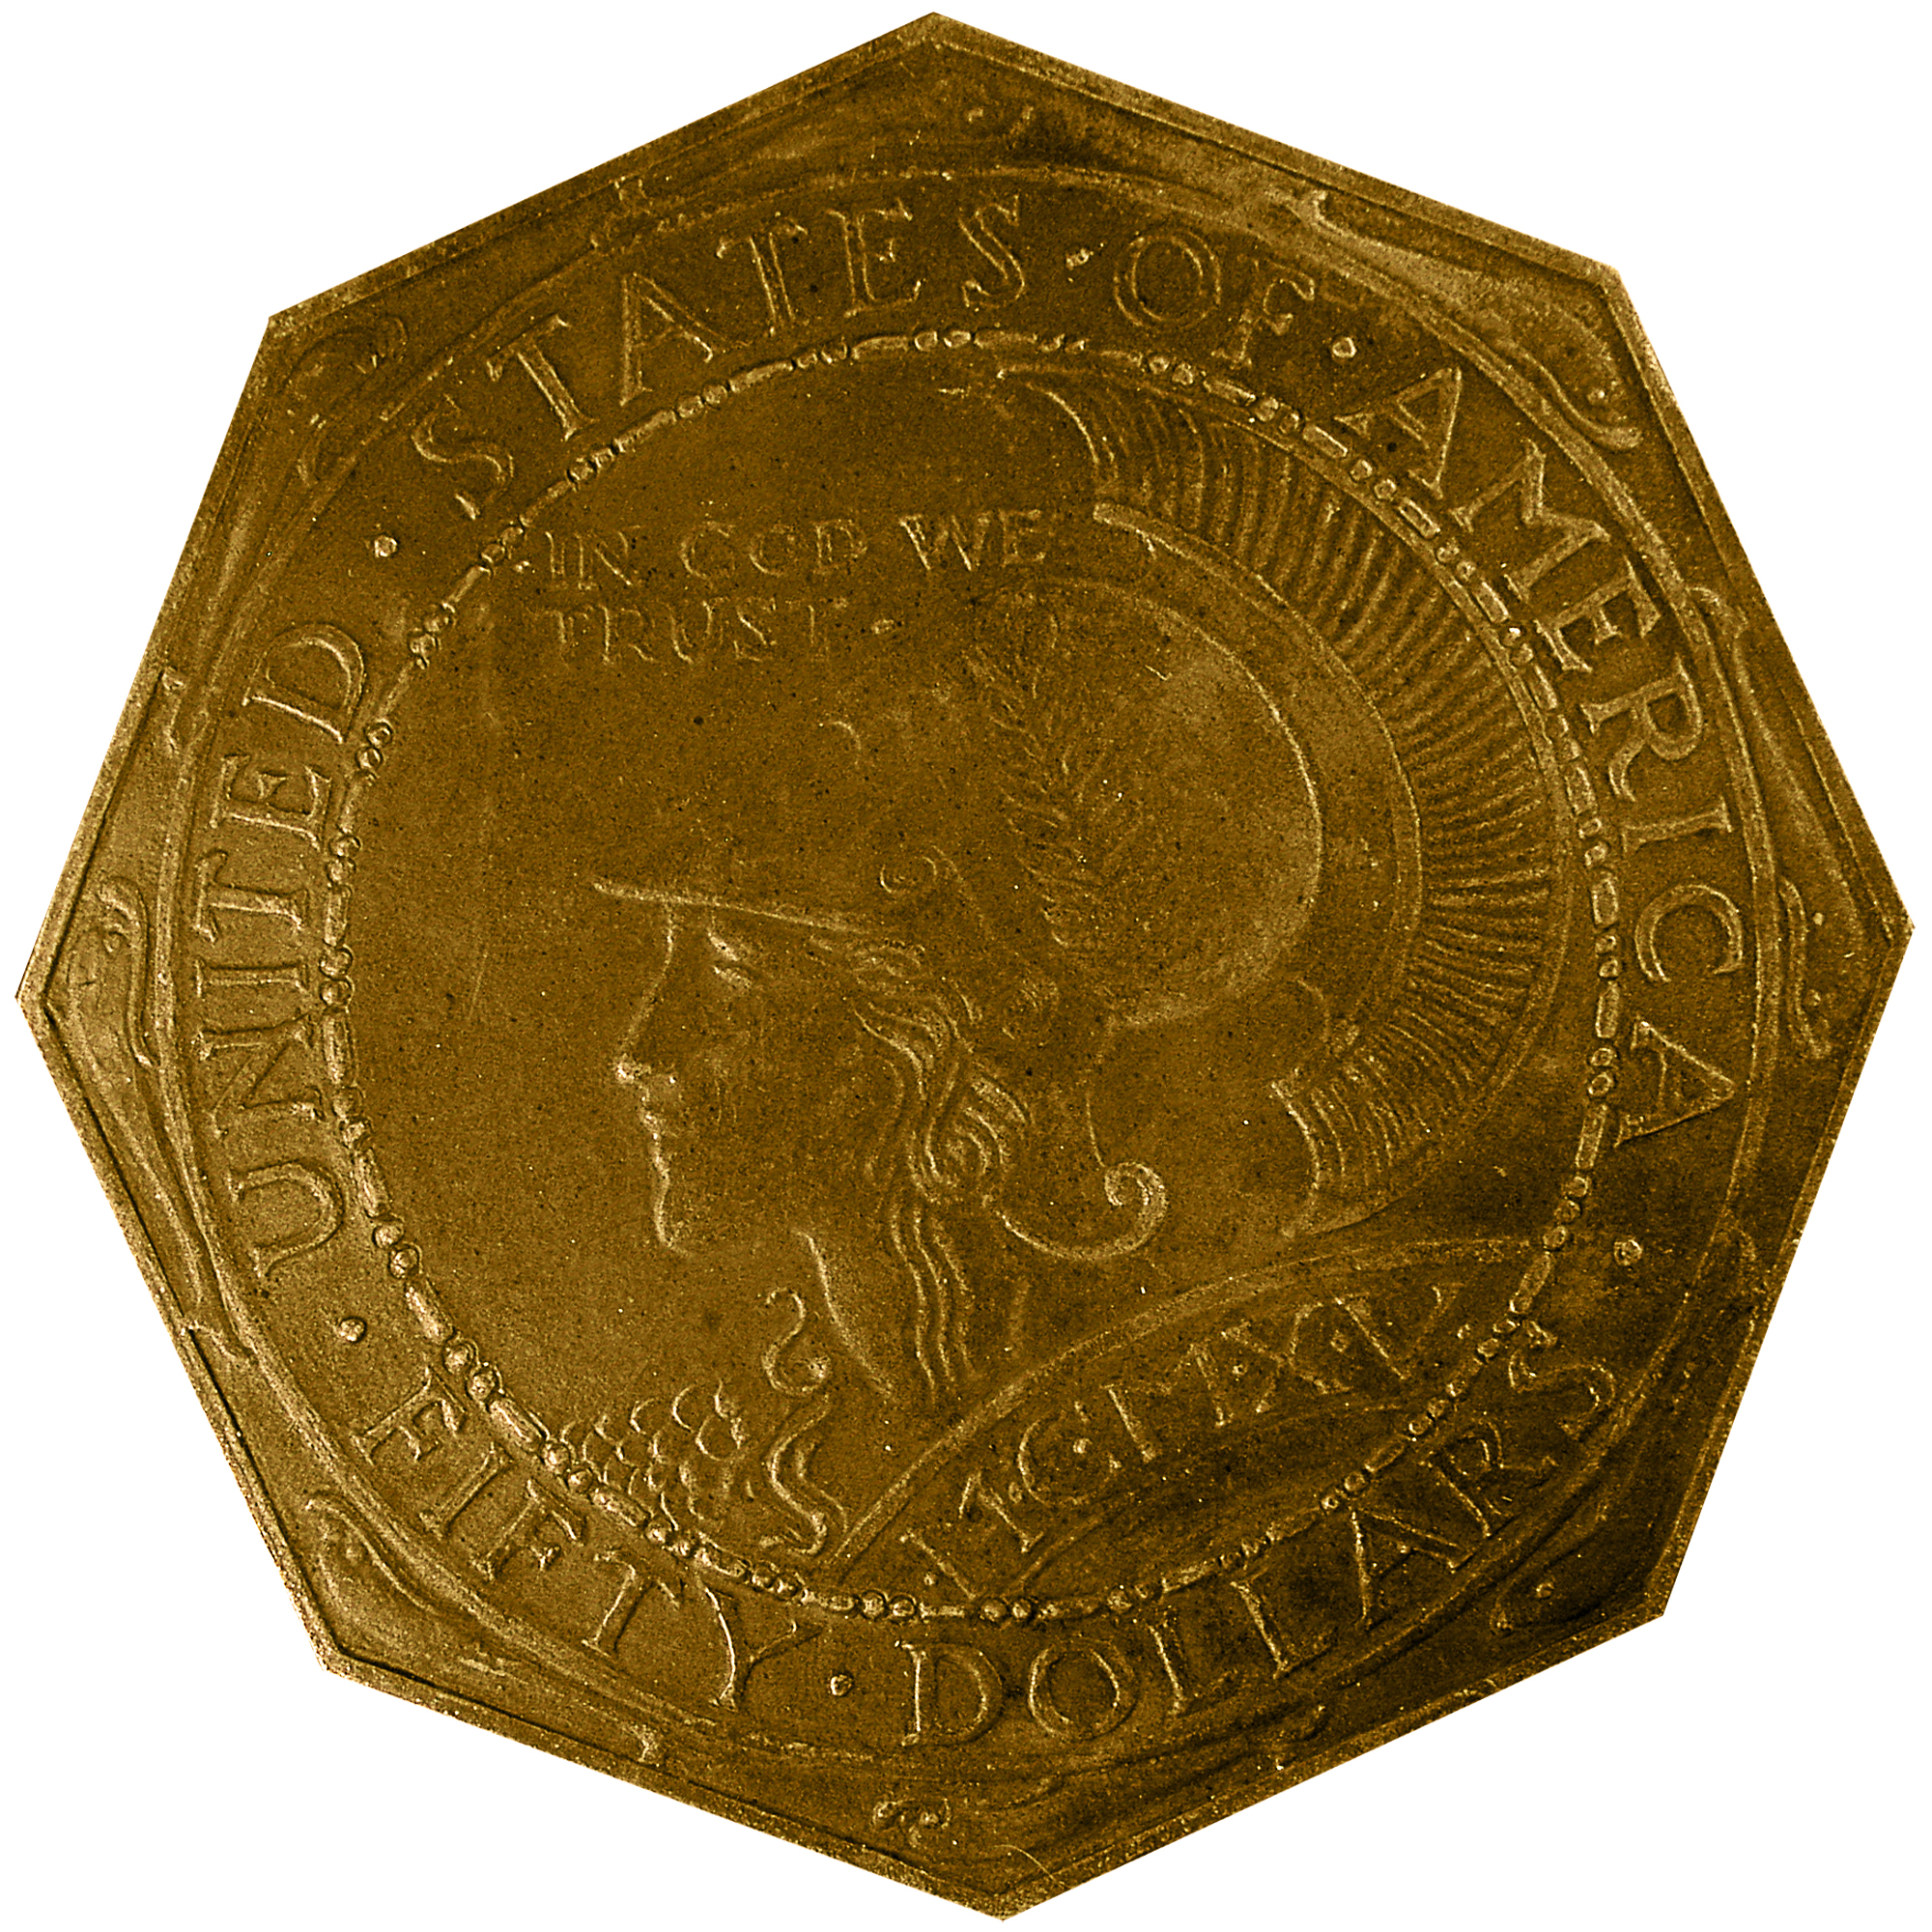 1915 Panama Pacific Exposition Commemorative Octagonal Gold Fifty Dollar Coin Reverse